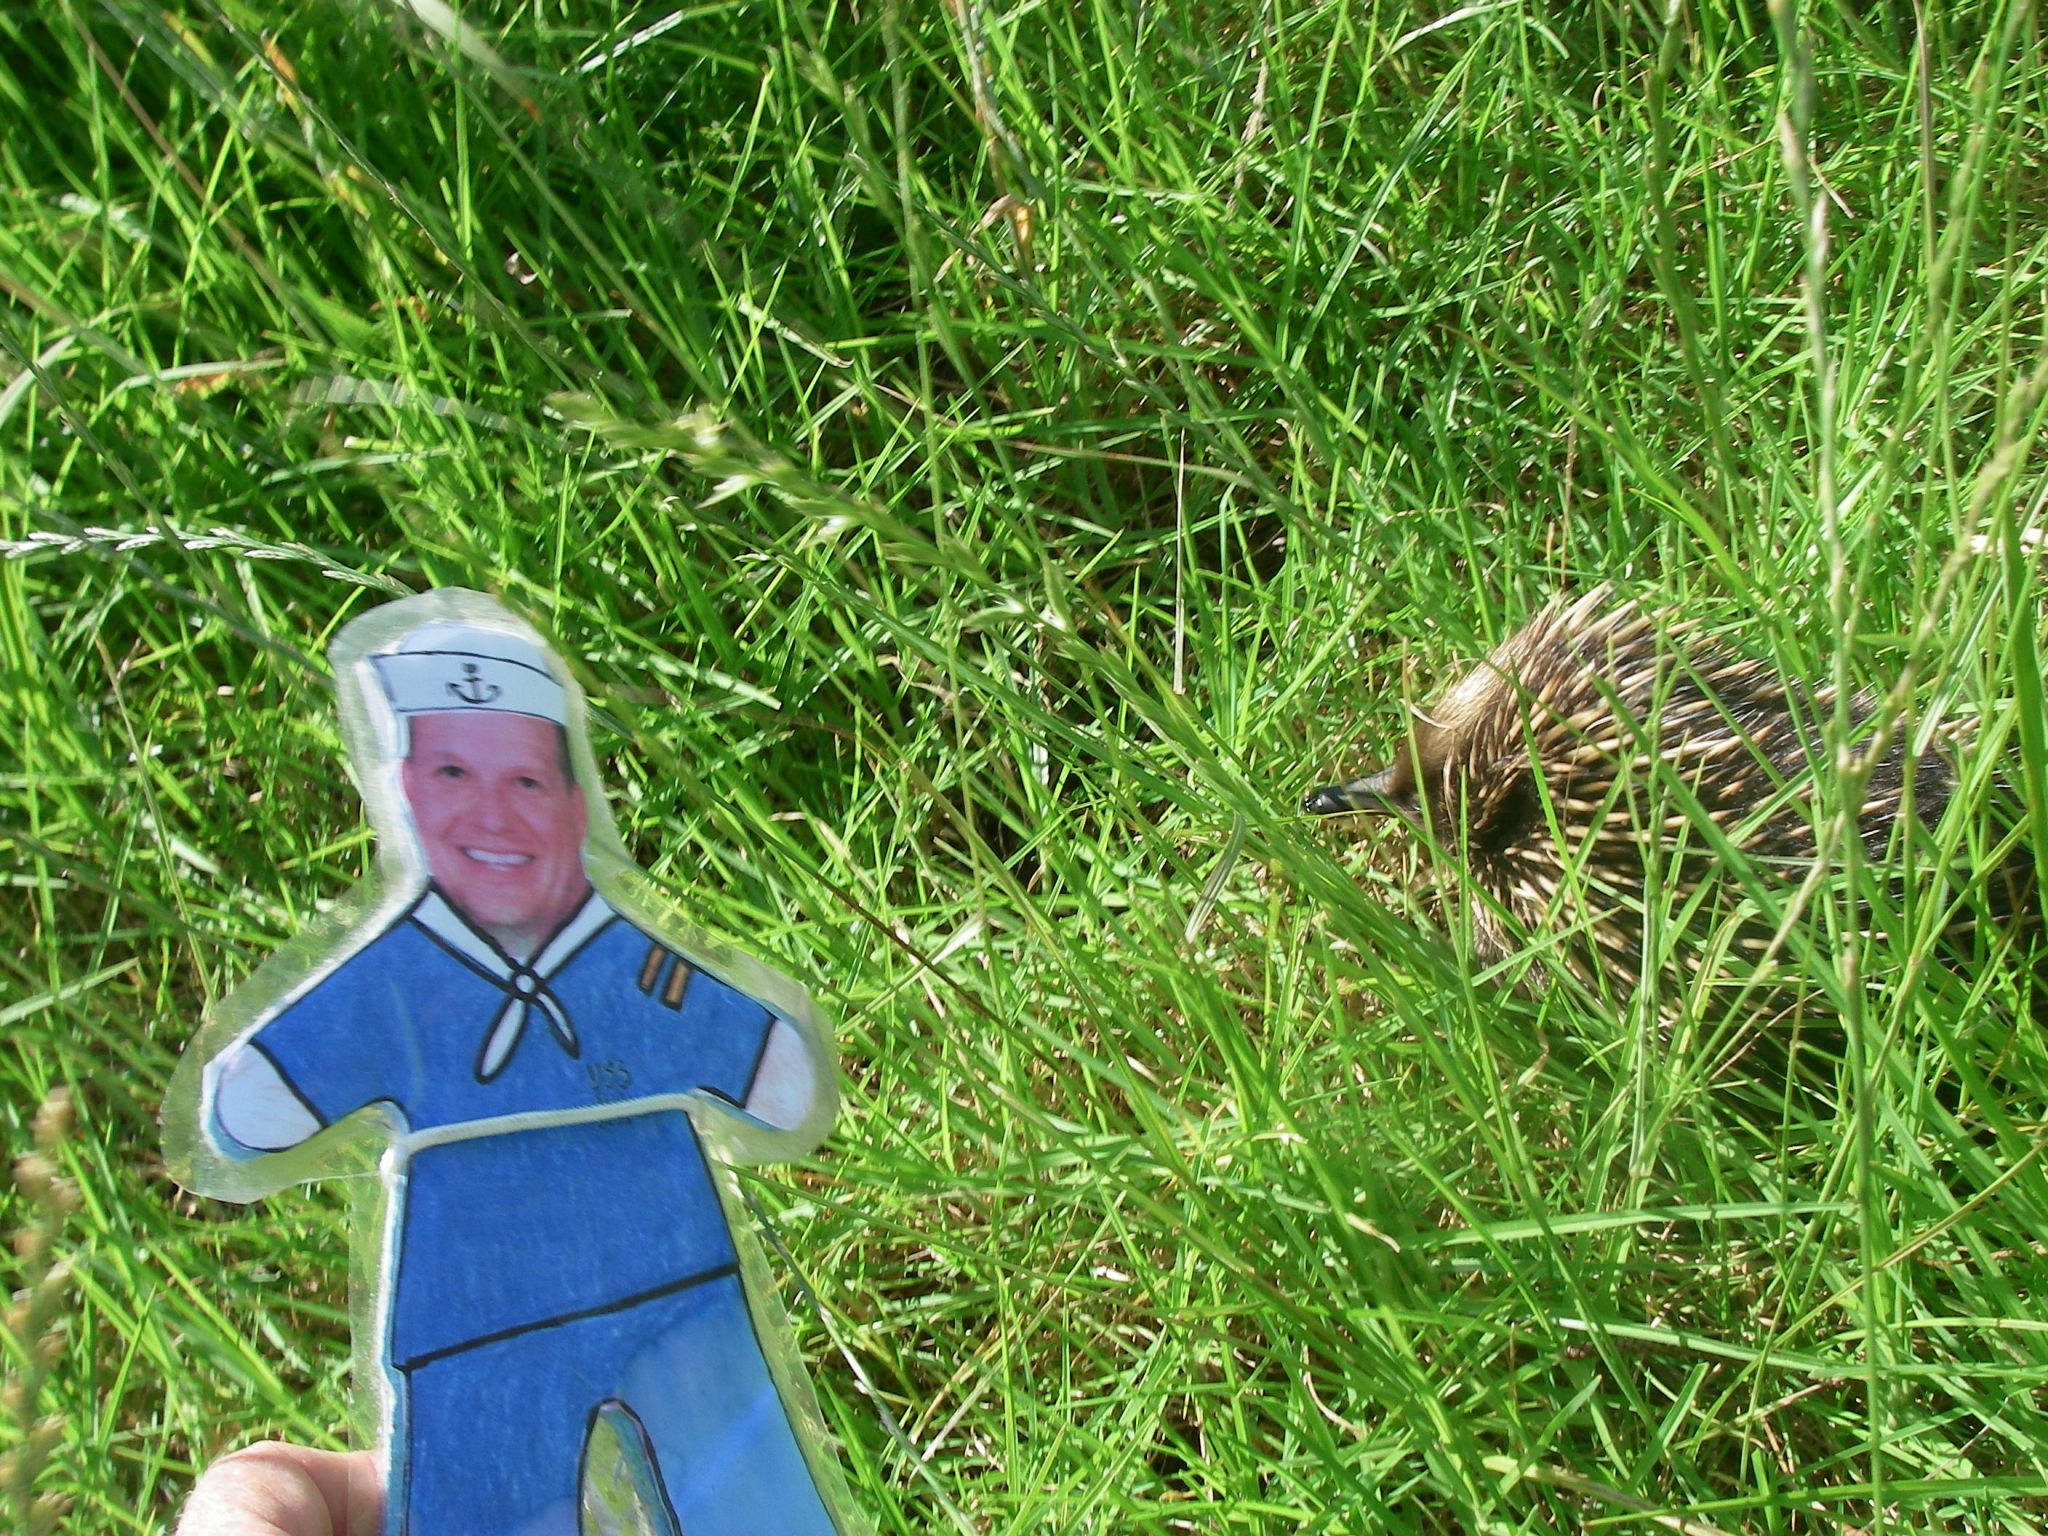 112.3. Flat Mr. Davis and a wild echidna by our hotel in Berry, New South Wales, Australia. Echidnas are one of Australia's marcupials, and only live wild in Australia